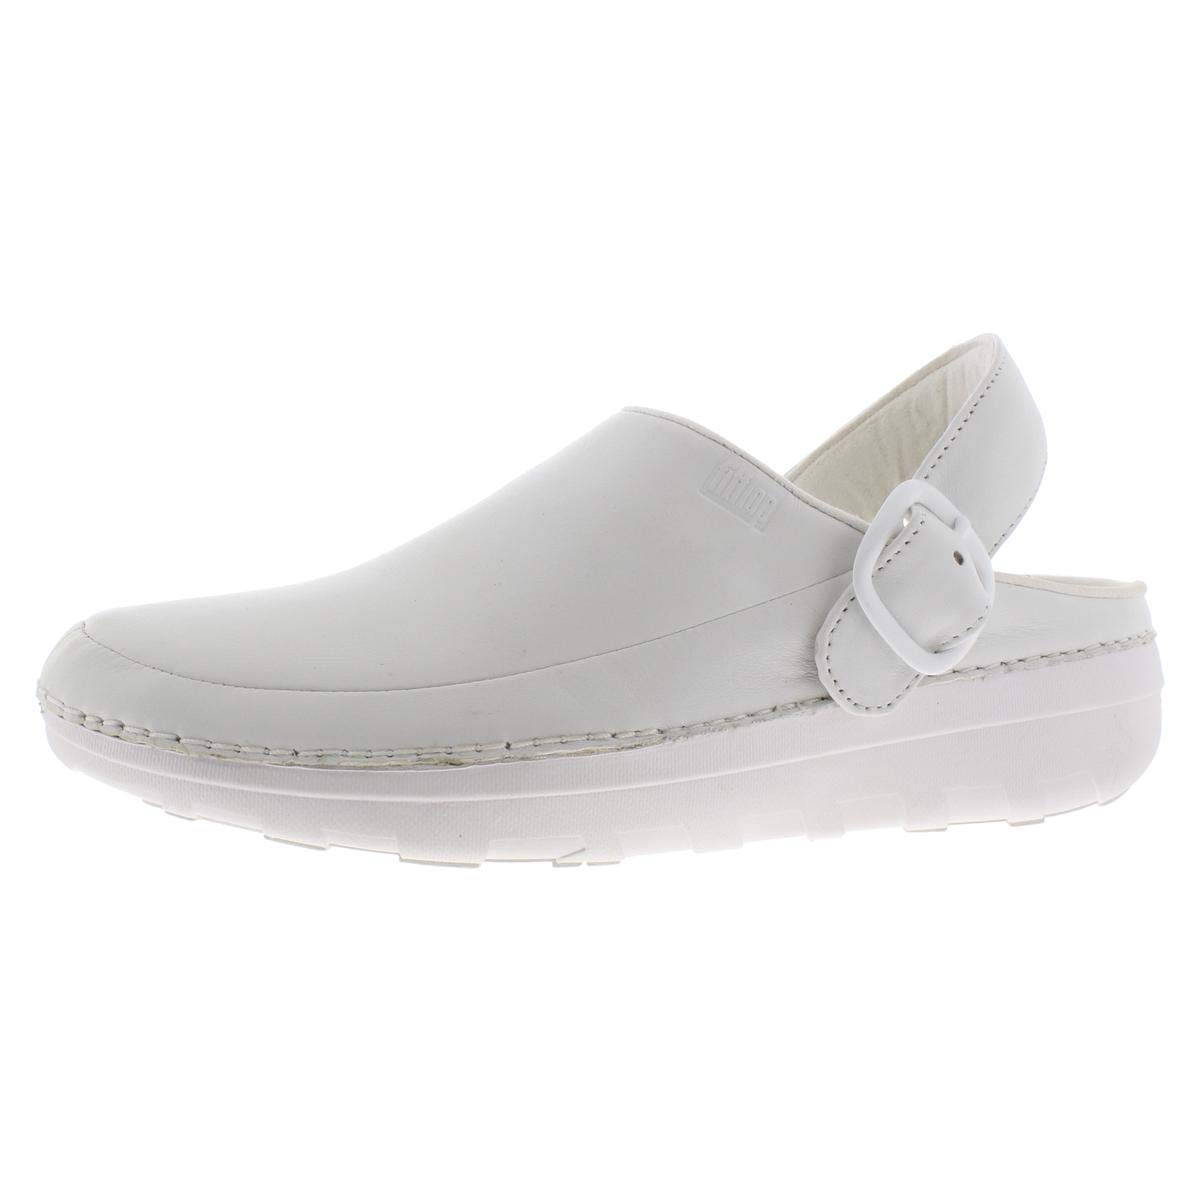 FITFLOP Men's Gogh PRO in Leather Medical Professional Shoe, Urban White, 13 M US by FITFLOP